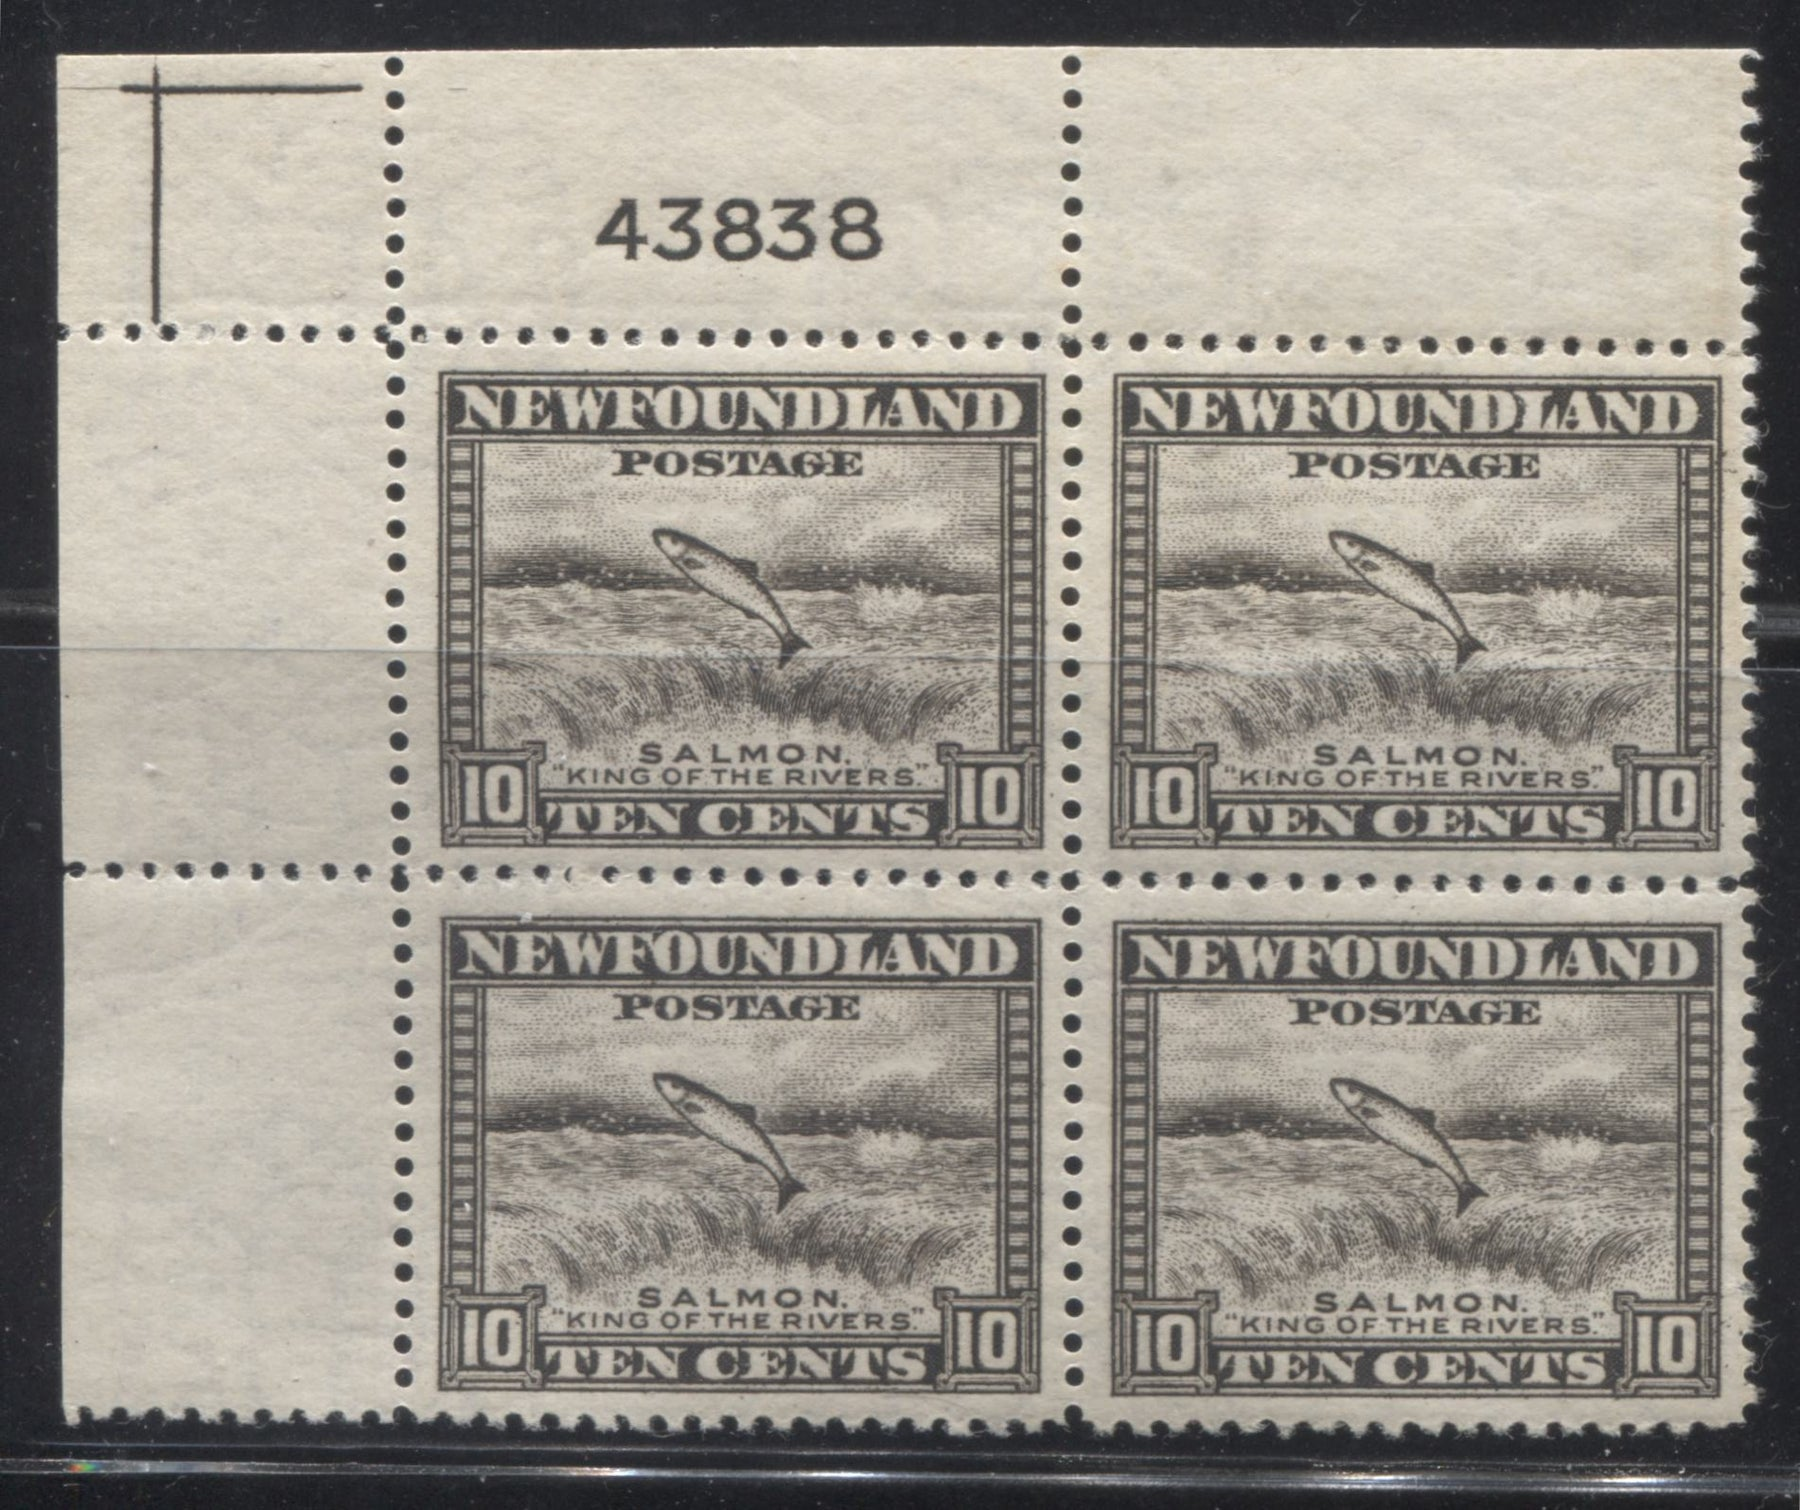 Newfoundland #260 10c Agate Salmon Leaping Falls, 1941-1949 Second Resources Issue, A Very Fine NH Upper Left Plate 43838 Block Brixton Chrome